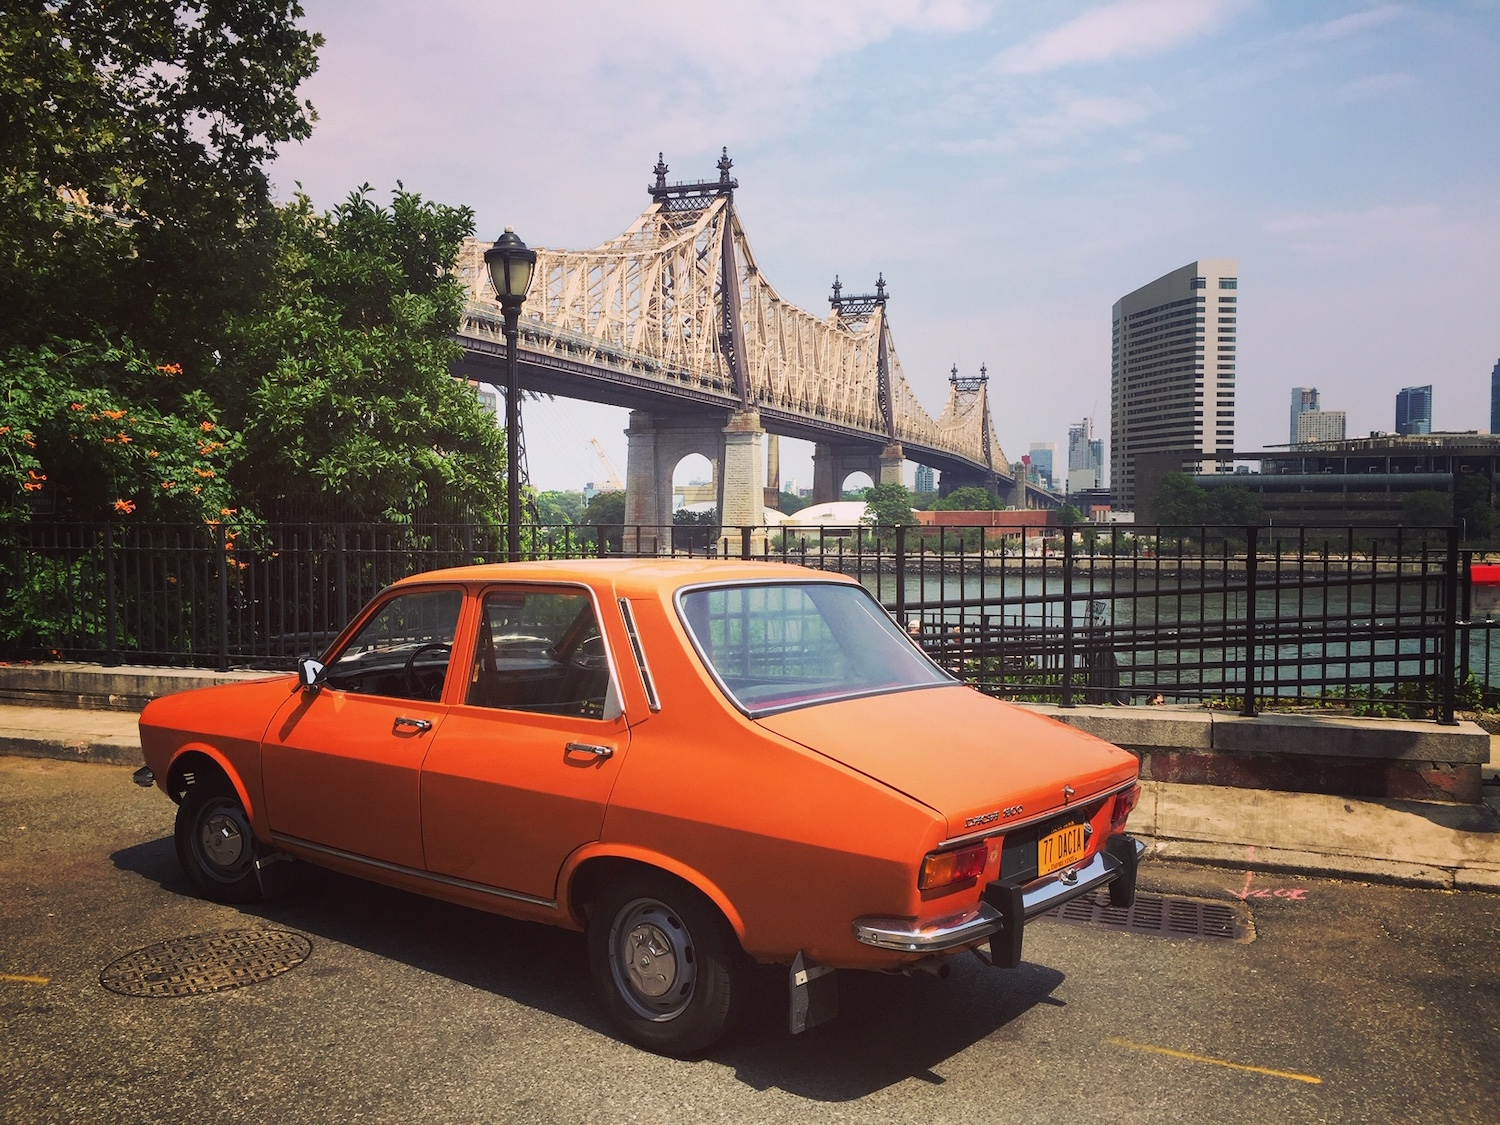 1977 dacia 1300 rear three-quarter urban cityscape background